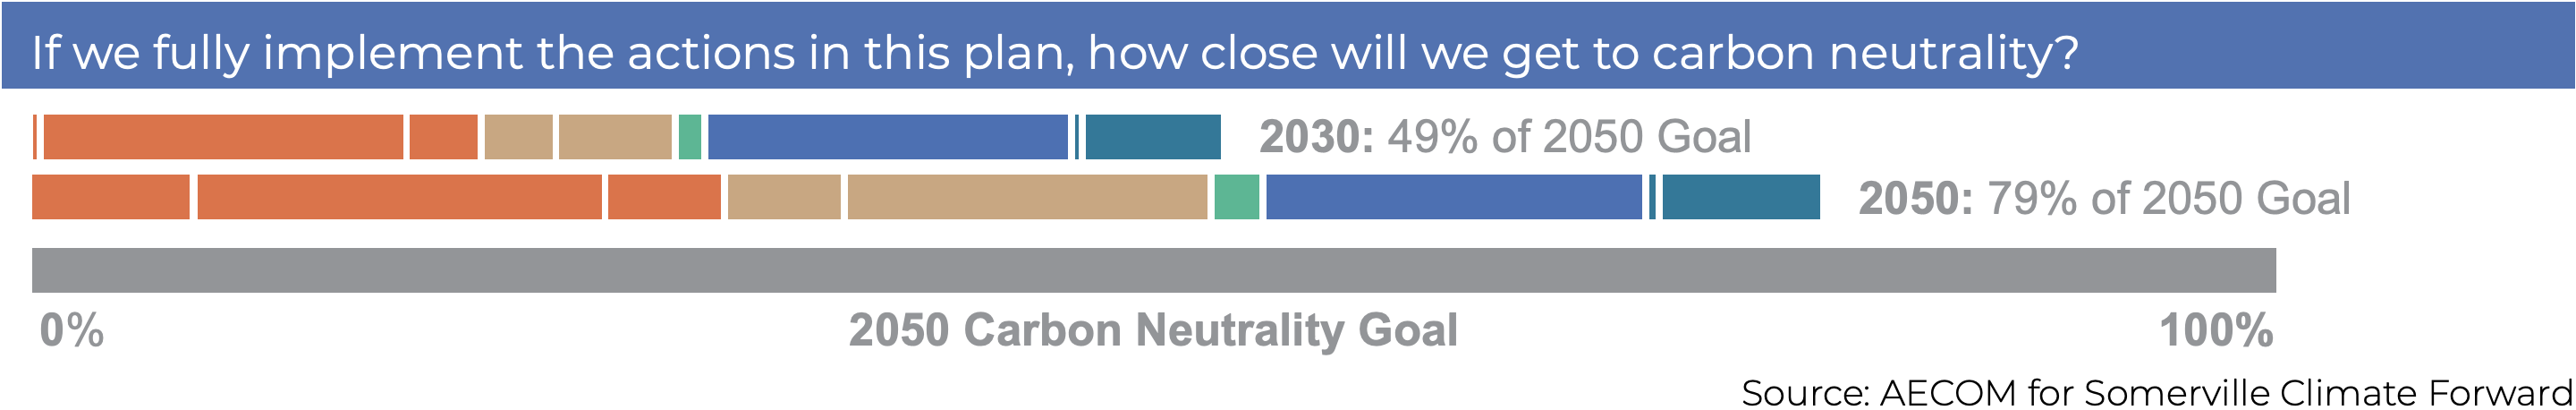 If we fully implement the plan actions, we should get to 49% of our 2050 goal by 2030, and 79% by 2050.